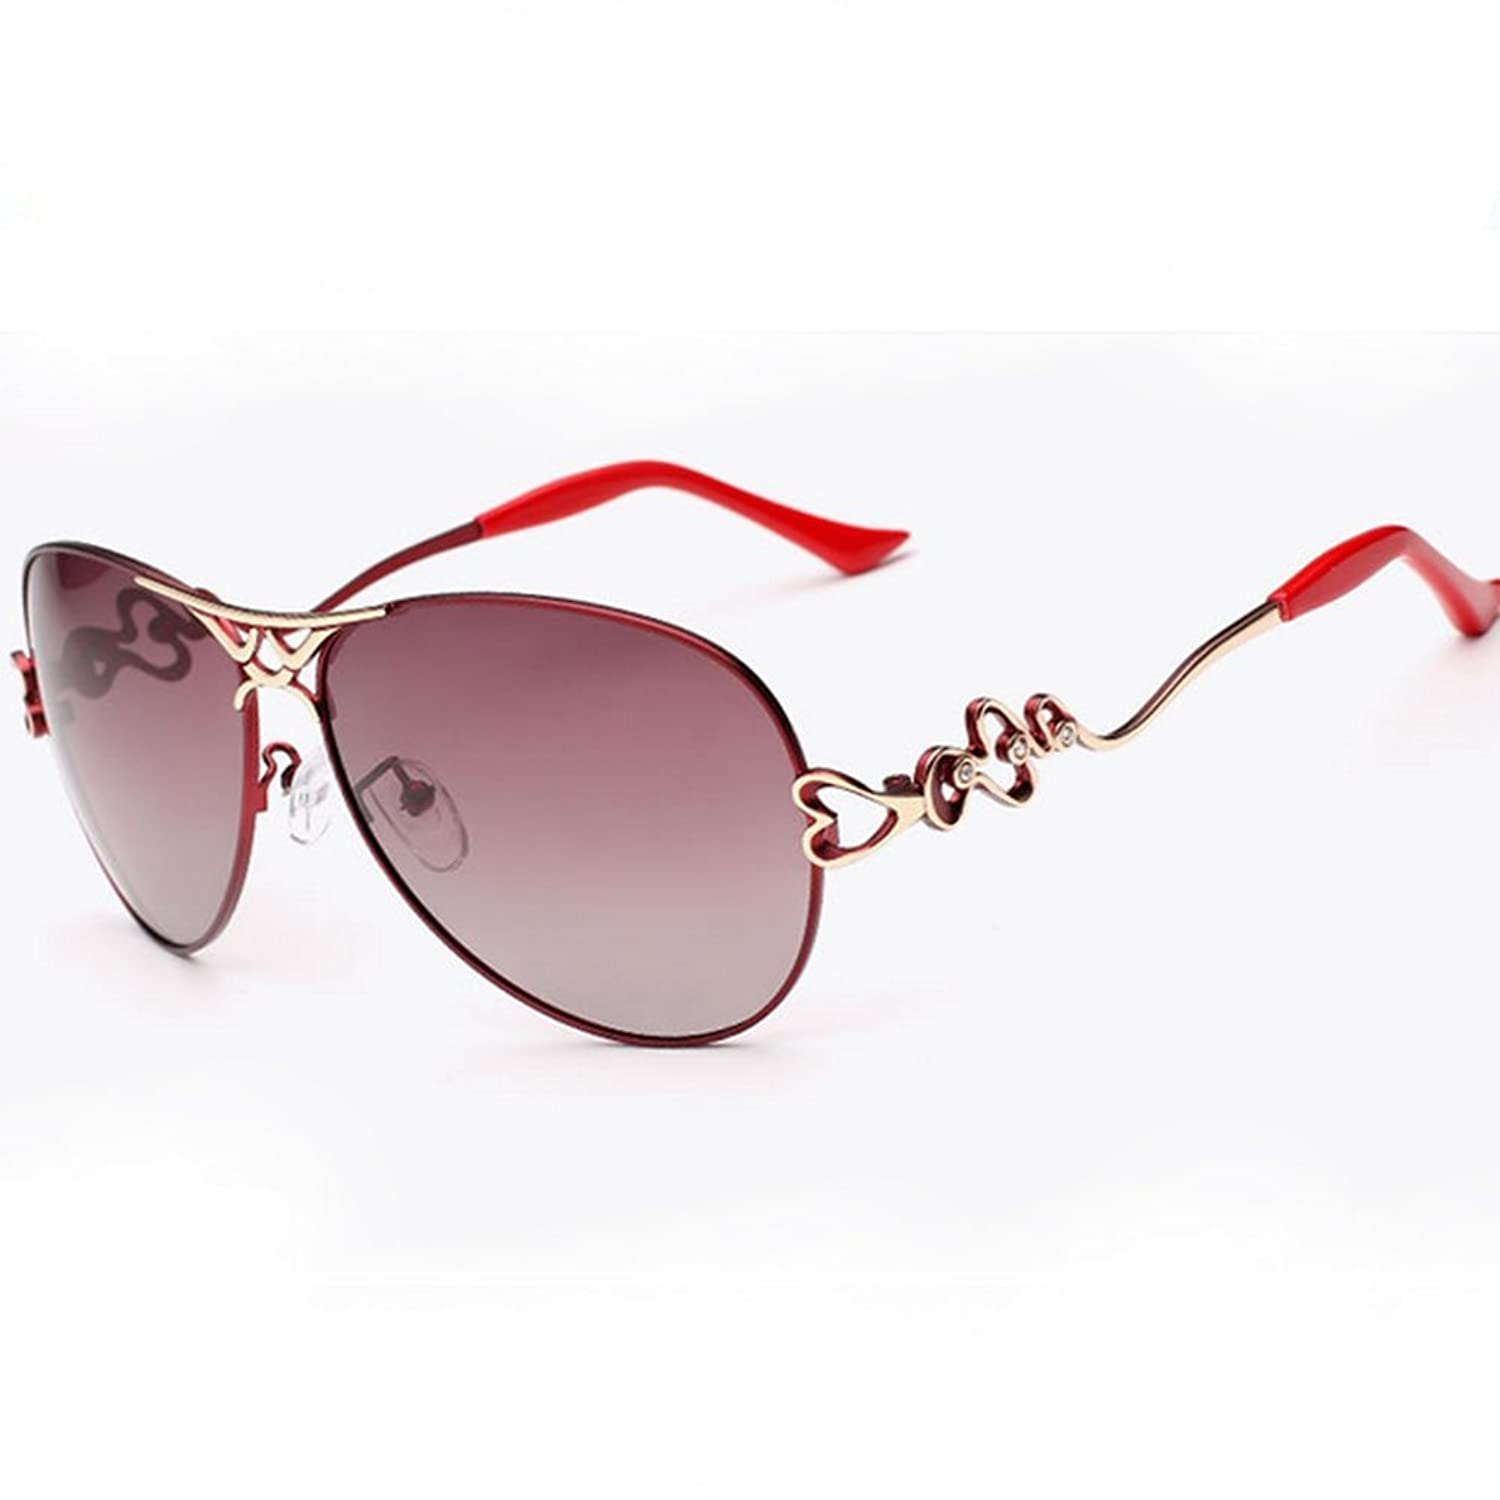 LuxuryLady-3 Sexy Lady Bend Flower Necessary in Summer Fashion Women Driving Travel Sunglasses